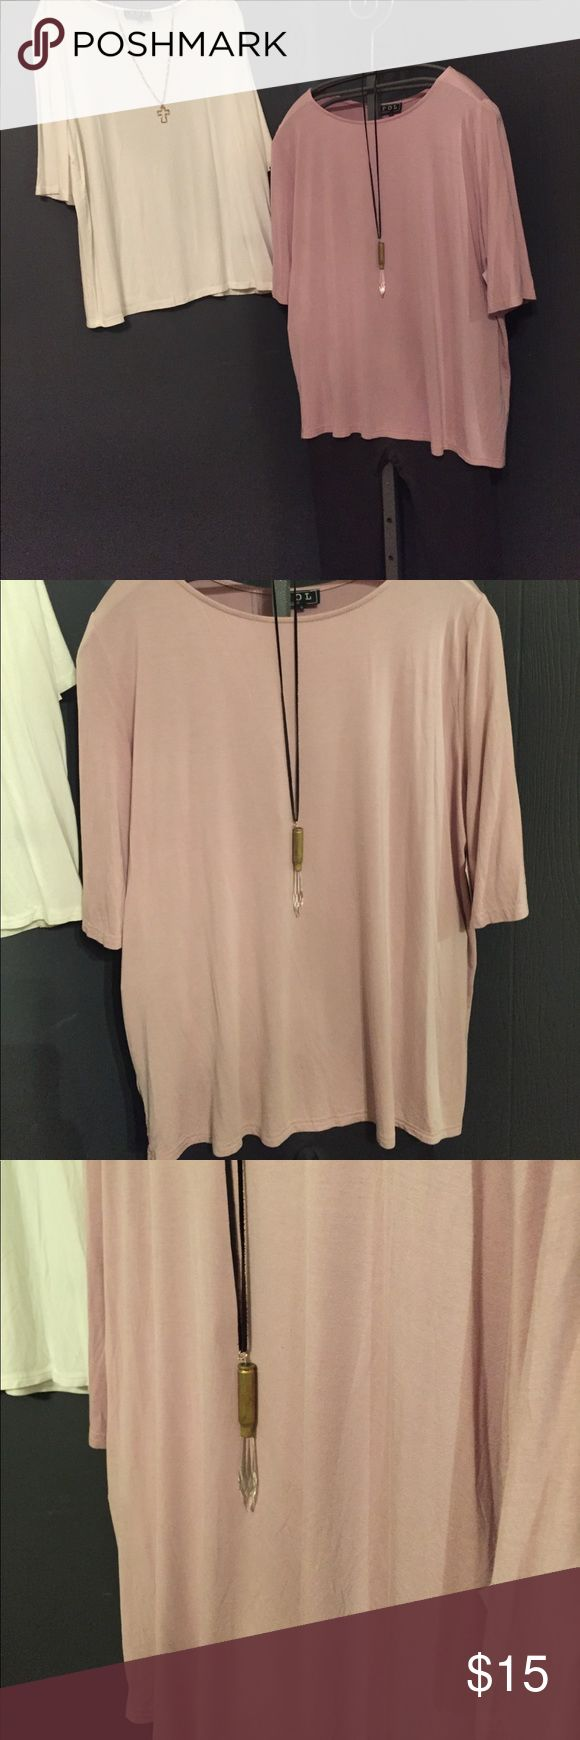 NWT POL Half Sleeve Boat neck T Shirt Can't even begin to really describe how soft this T Shirt feels!  This listing is for a gorgeous lilac (comes in an off white too).  You will want to wear this every day! POL Tops Tees - Short Sleeve